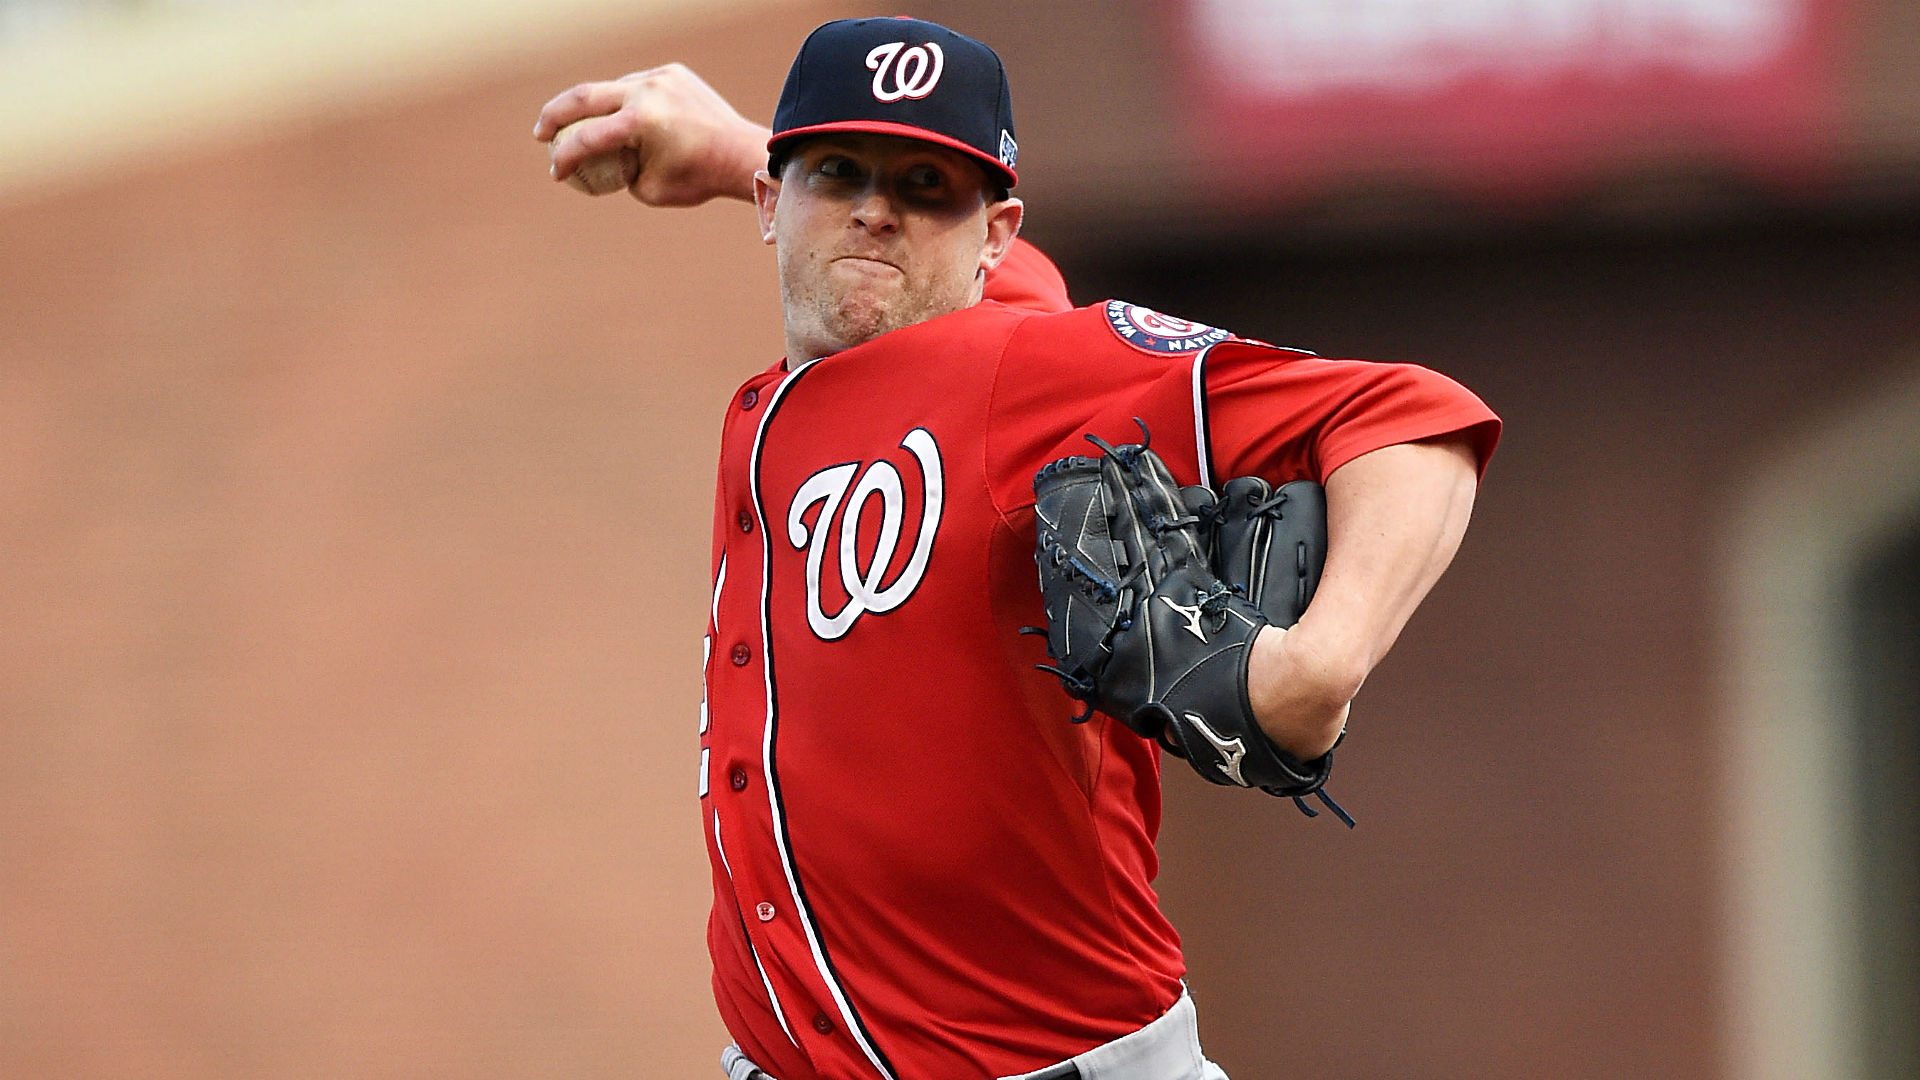 Nats' Drew Storen not pleased about losing closer's role—again